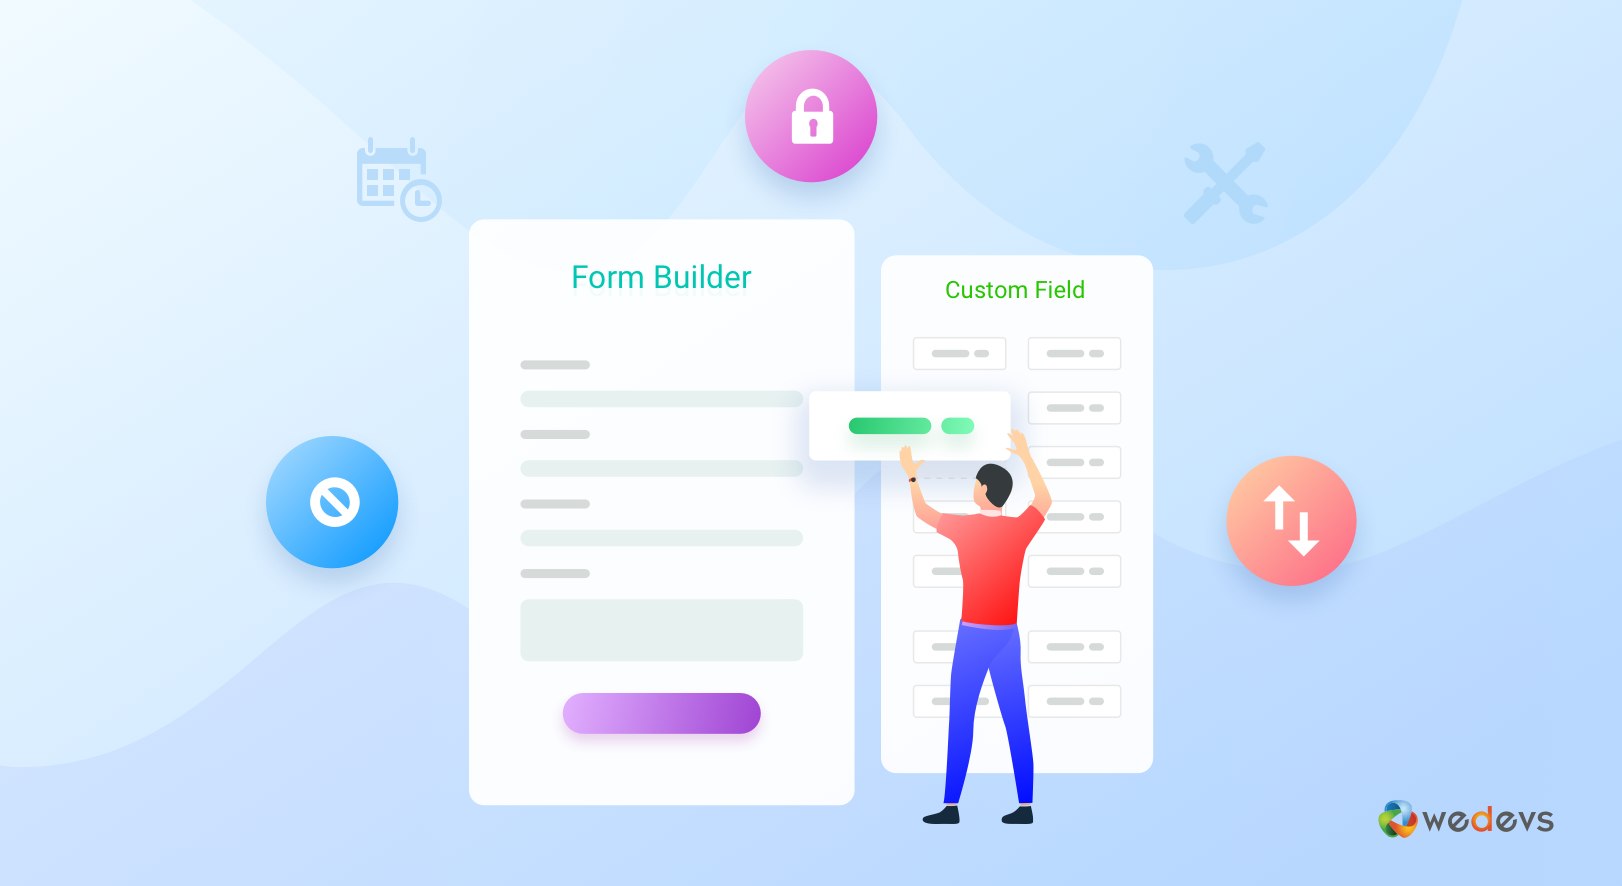 Most Useful Way A WordPress Contact Form Builder Should Perform in 2019